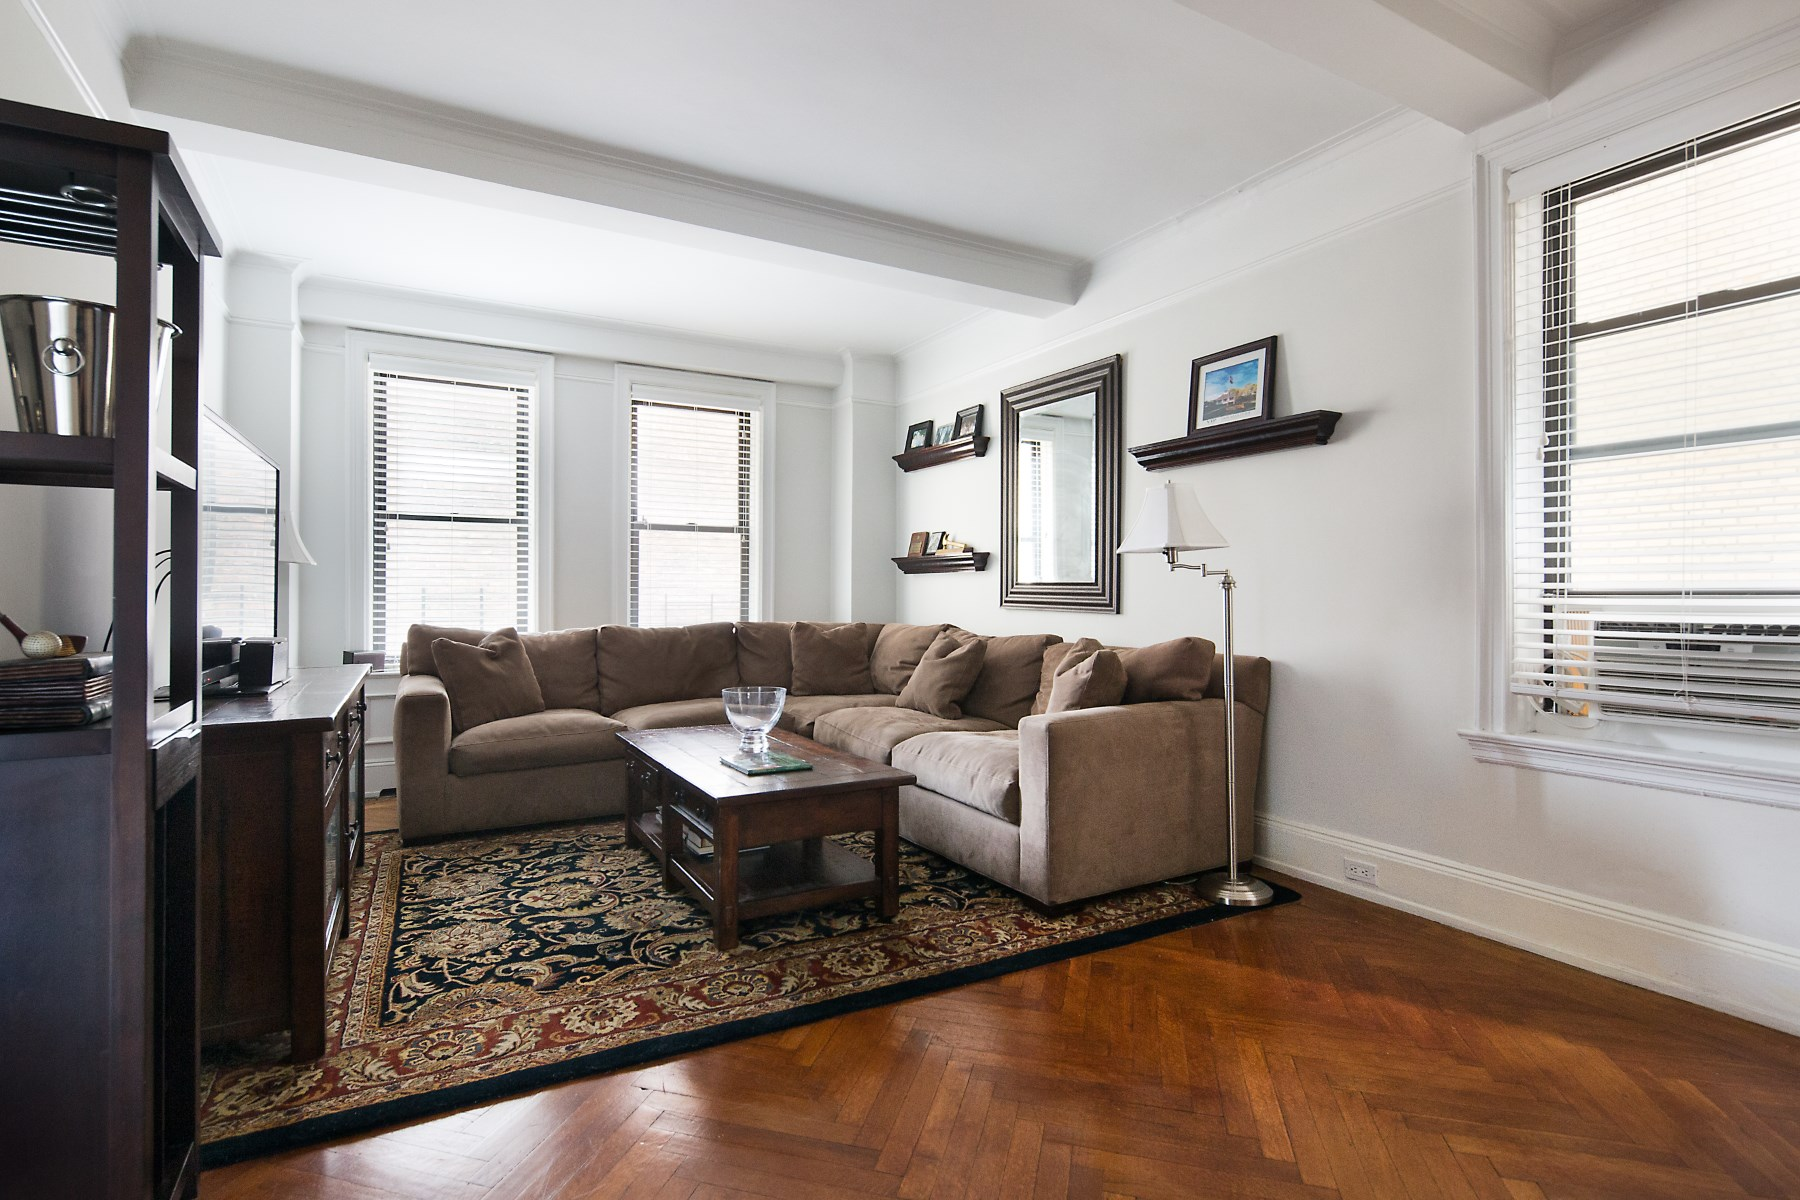 Co-op for Sale at 1230 Park Avenue, Apt 6A 1230 Park Avenue Apt. 6A New York, New York, 10128 United States